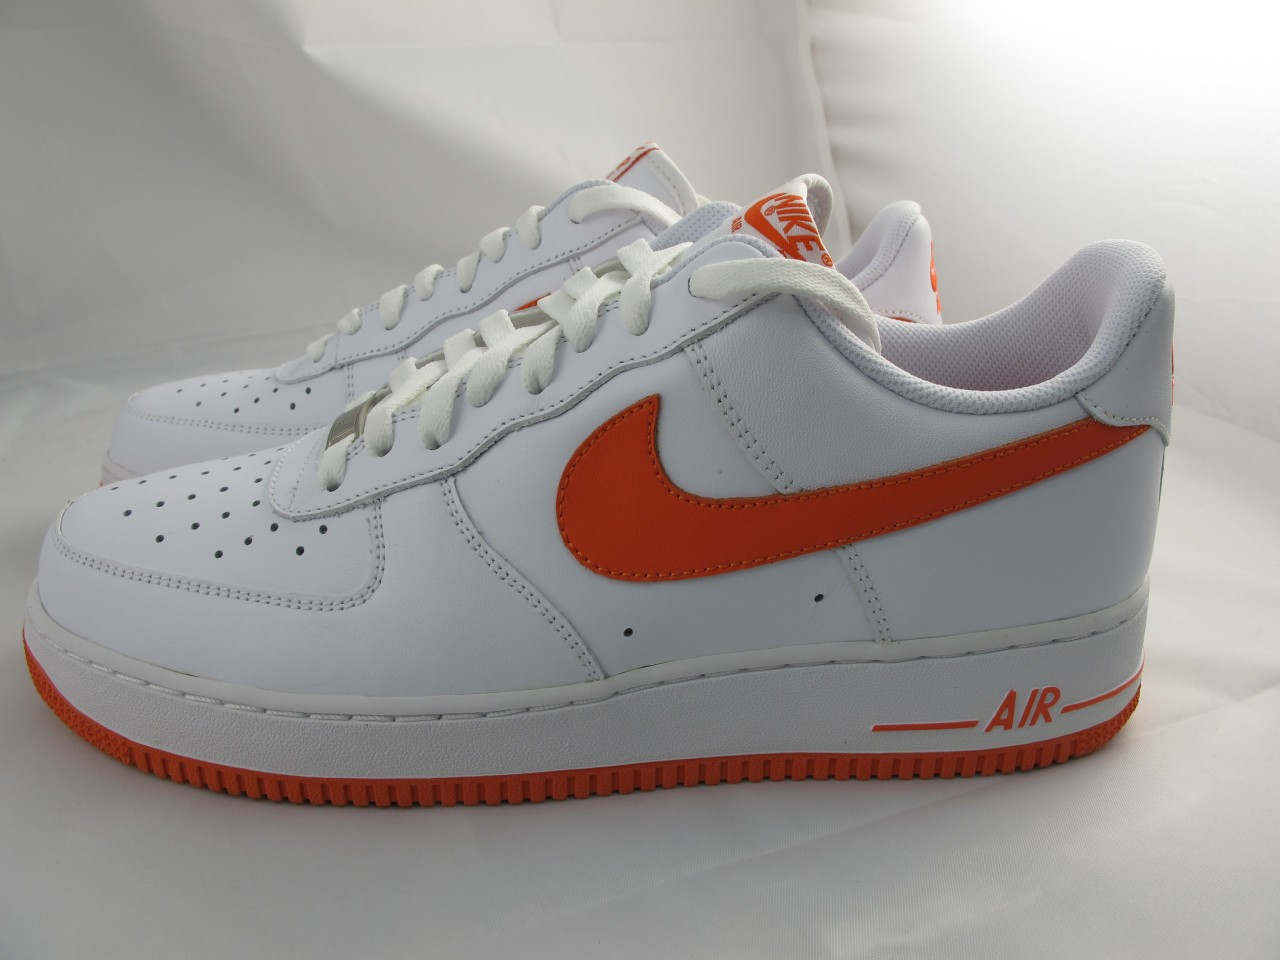 NEW-MENS-NIKE-AIR-FORCE-1-17-315122-181-WHITE-ORANGE-BLAZE